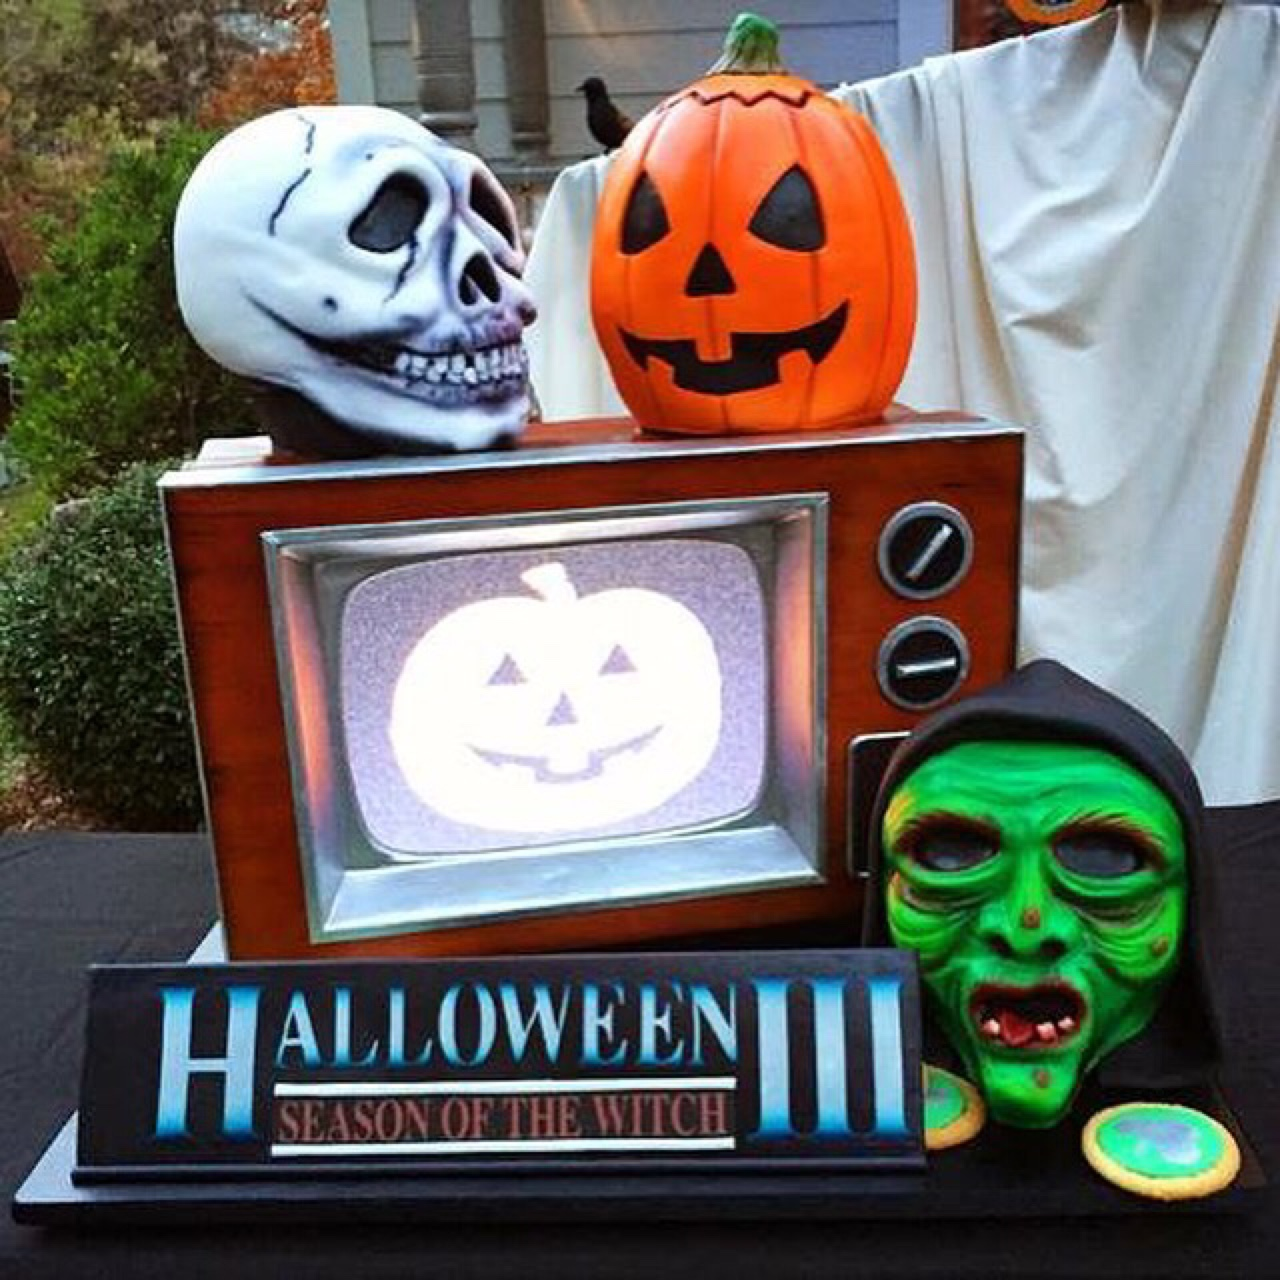 skull jack o lantern and witch masks are cake and an actual working tv was incorporated into the tv cake to play the silver shamrock tv commercial